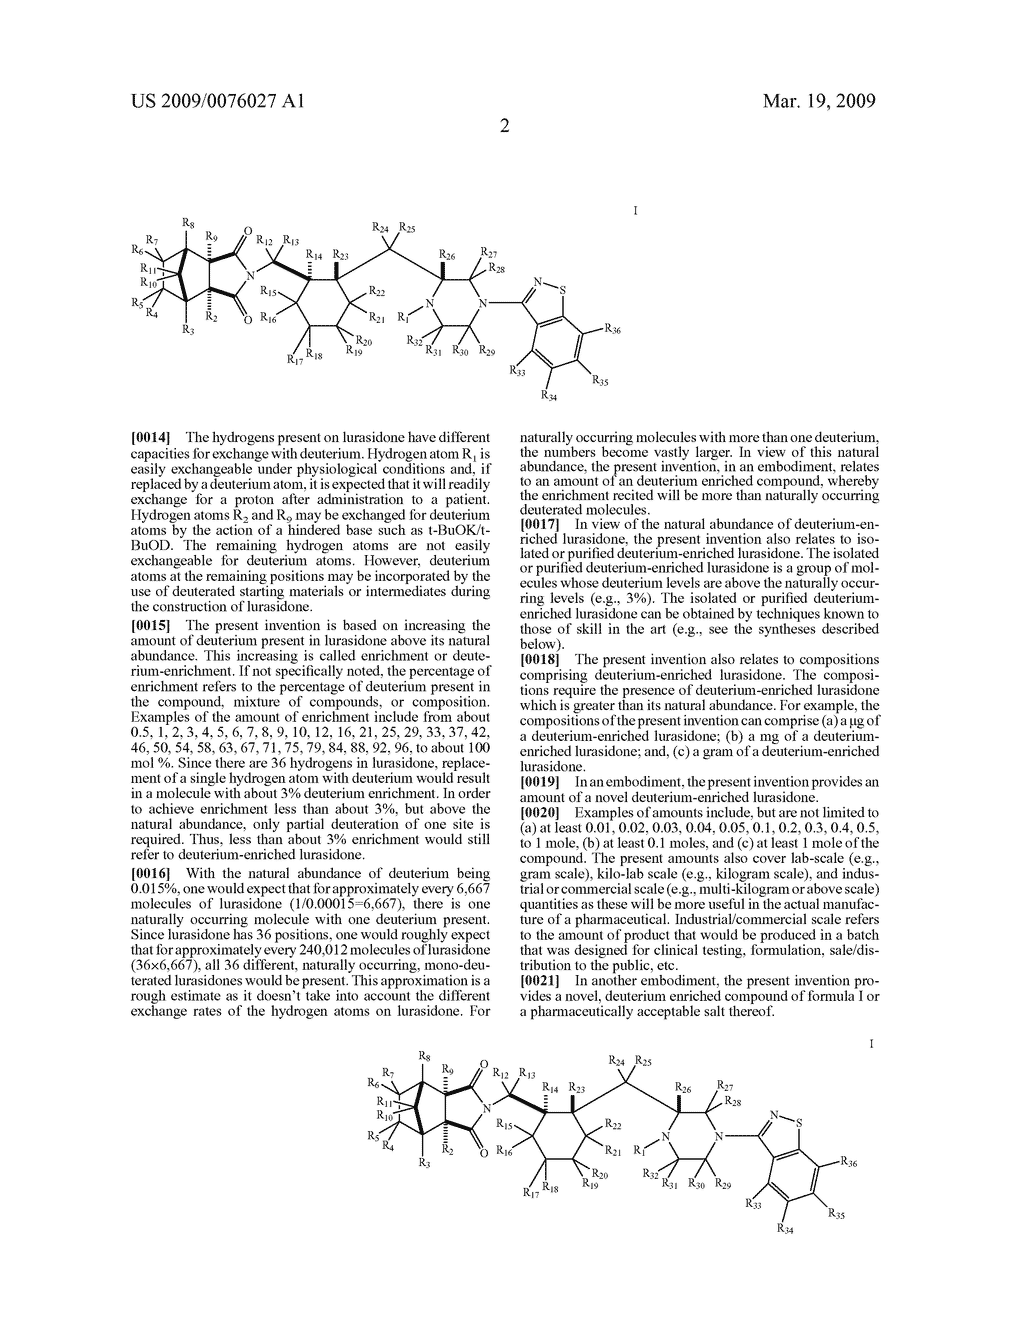 DEUTERIUM-ENRICHED LURASIDONE - diagram, schematic, and image 03